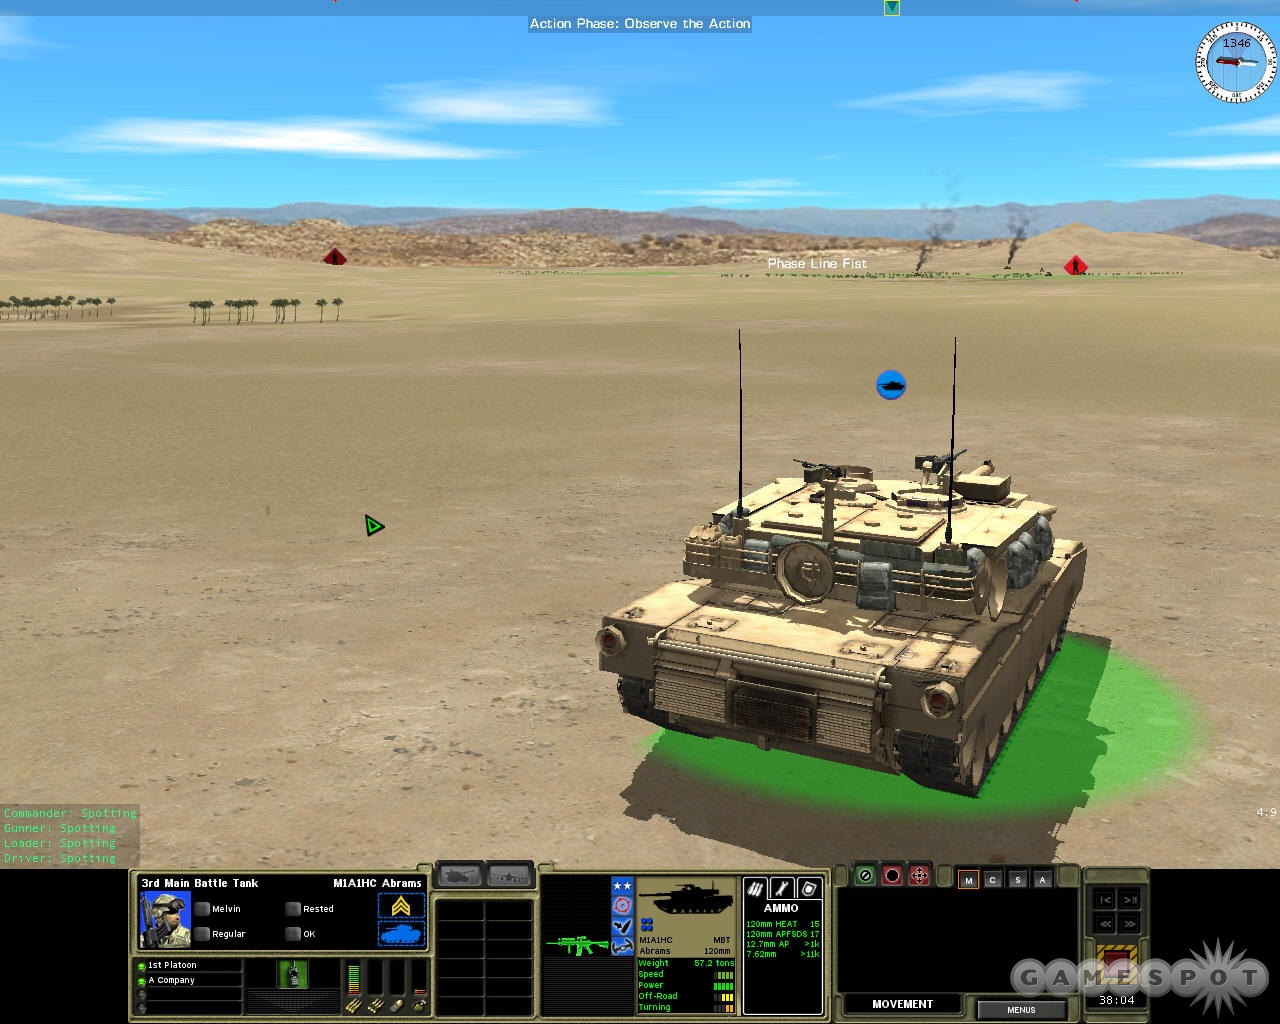 Modern tanks can hit and kill from up to a mile away, and deserts offer no place to hide.